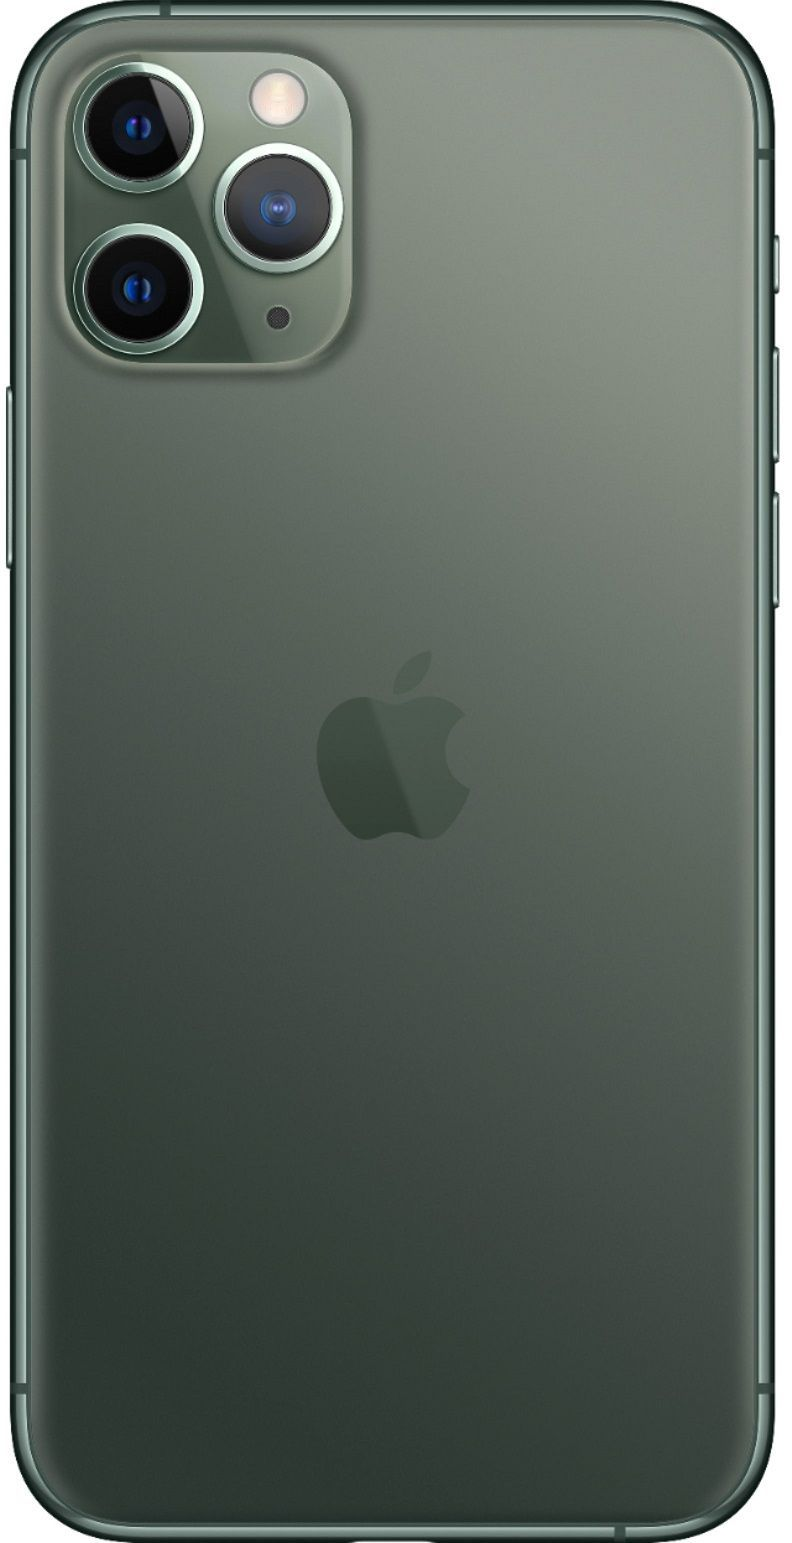 Iphone 11 Pro Max Midnight Green 64 Gb U Iphone Apple Products Apple Iphone Accessories